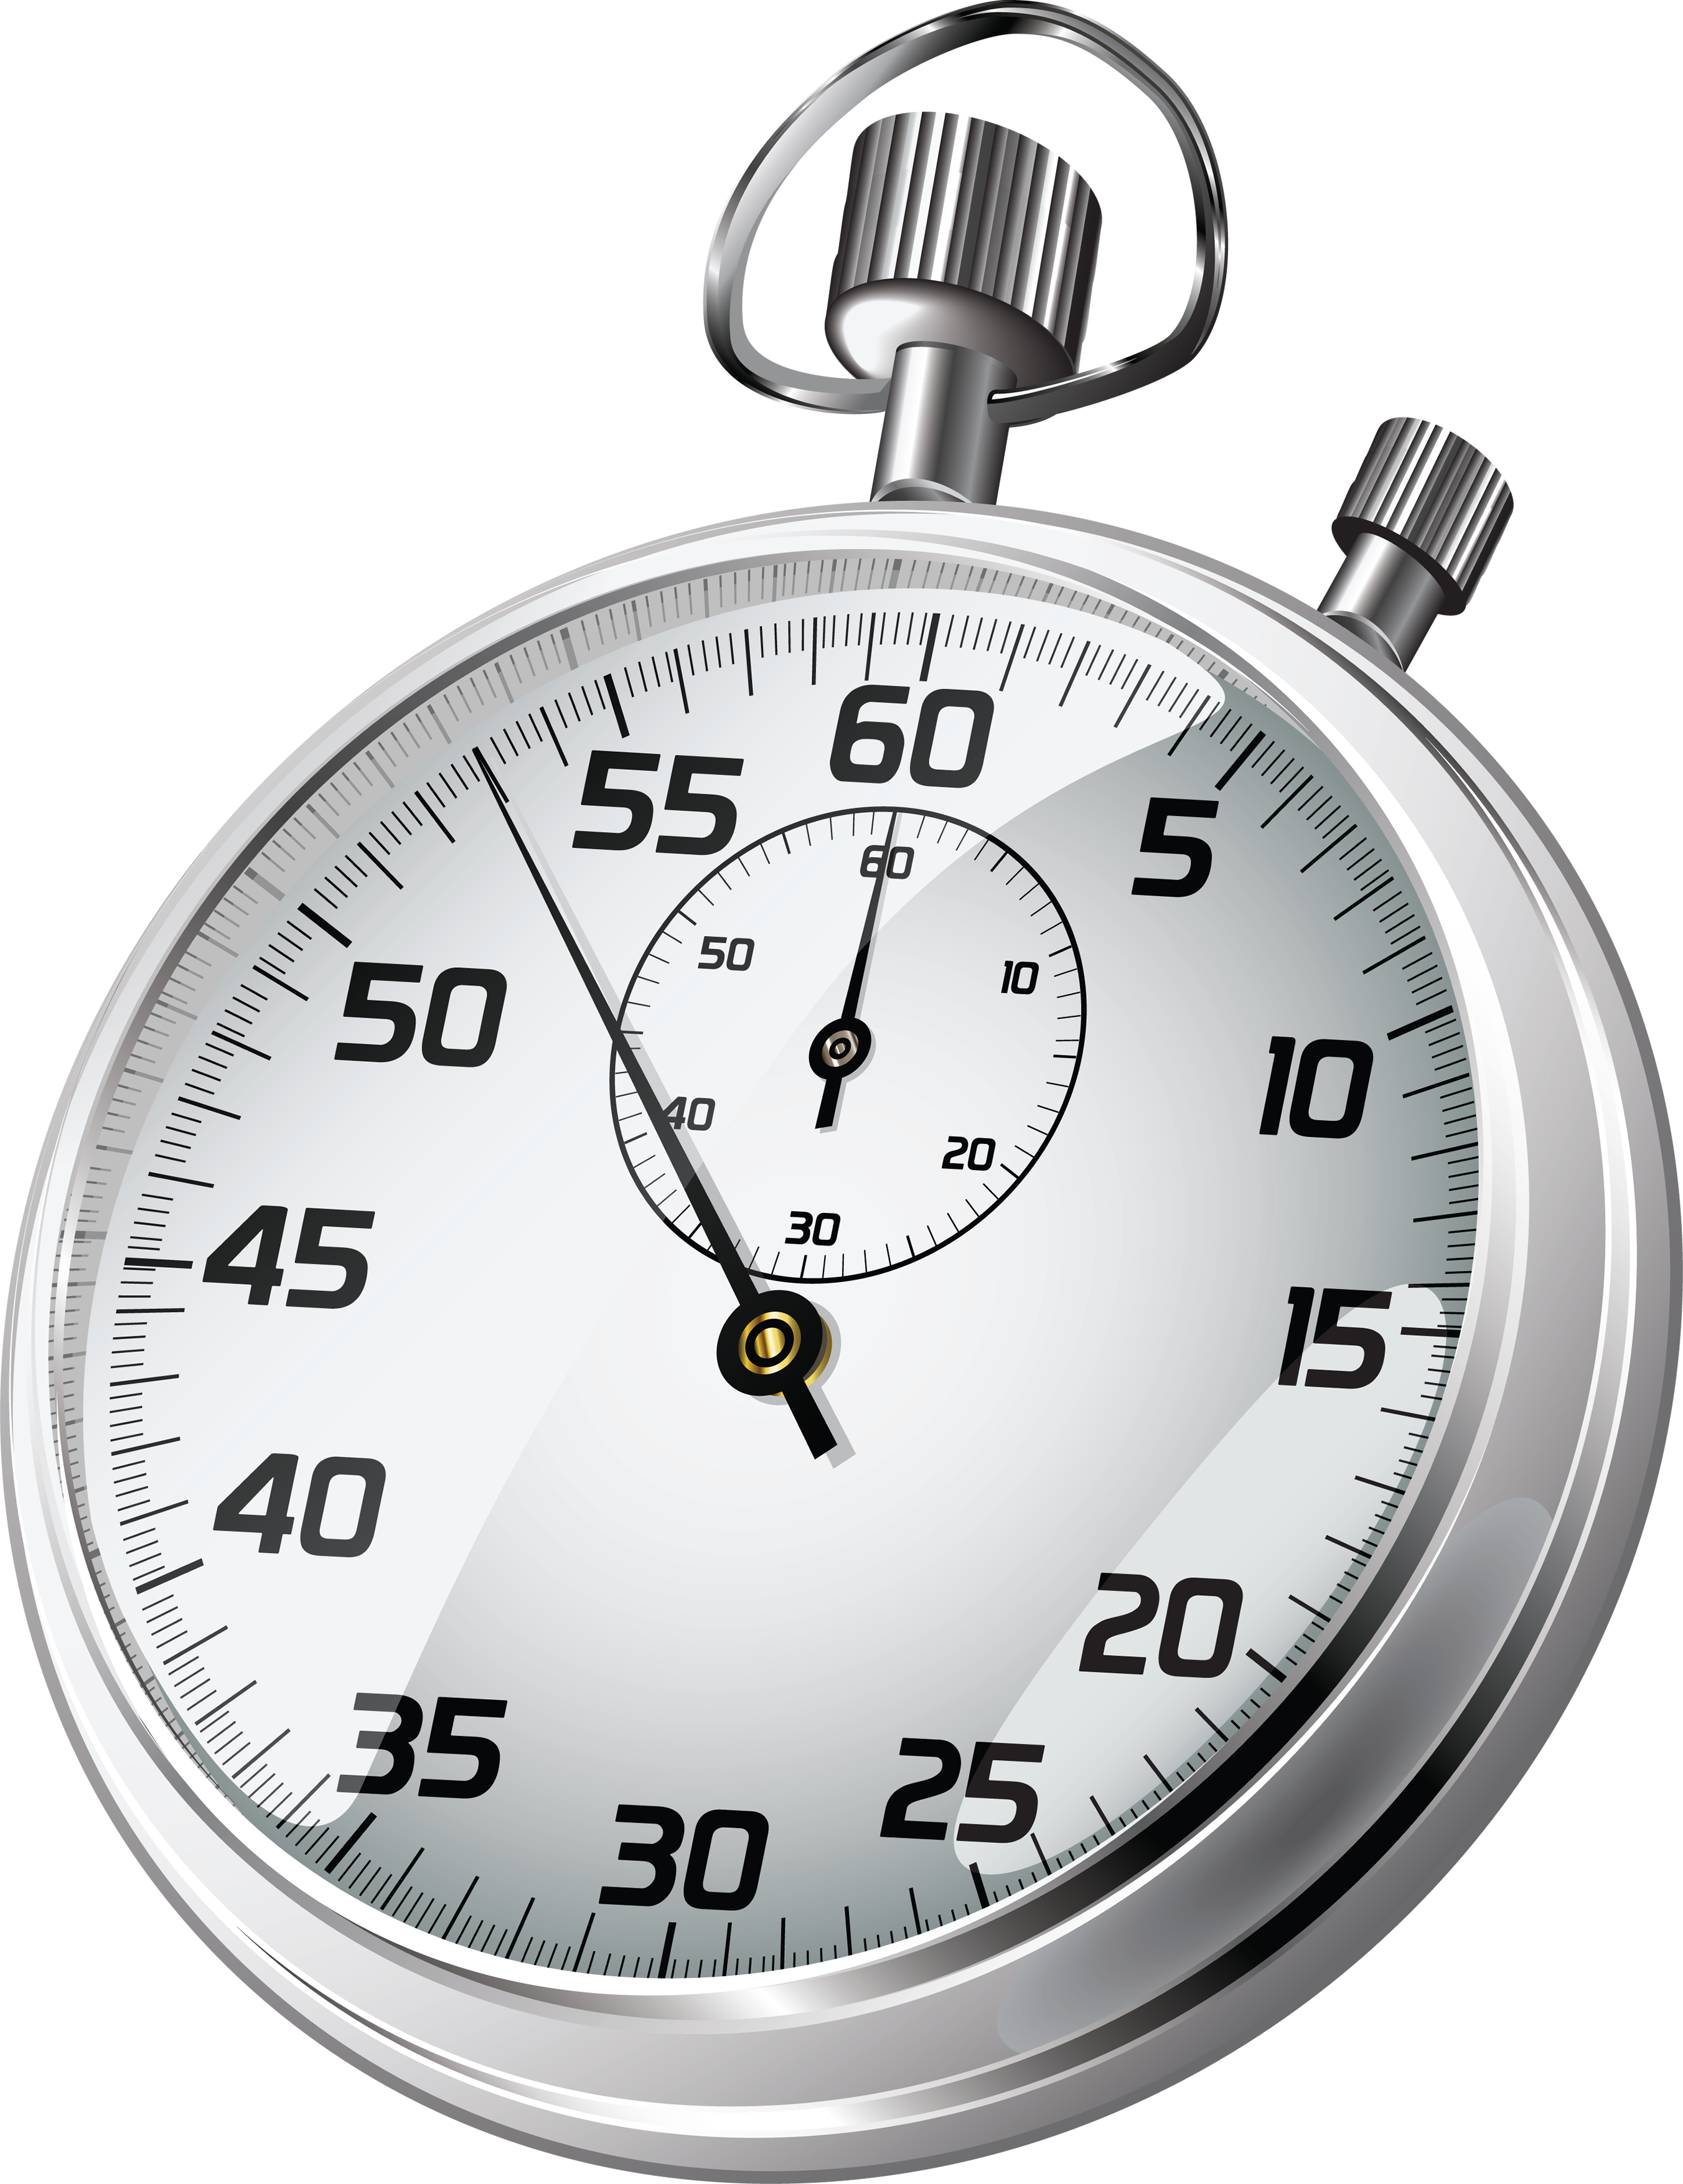 Pocket clipart vector. Stopwatch png image